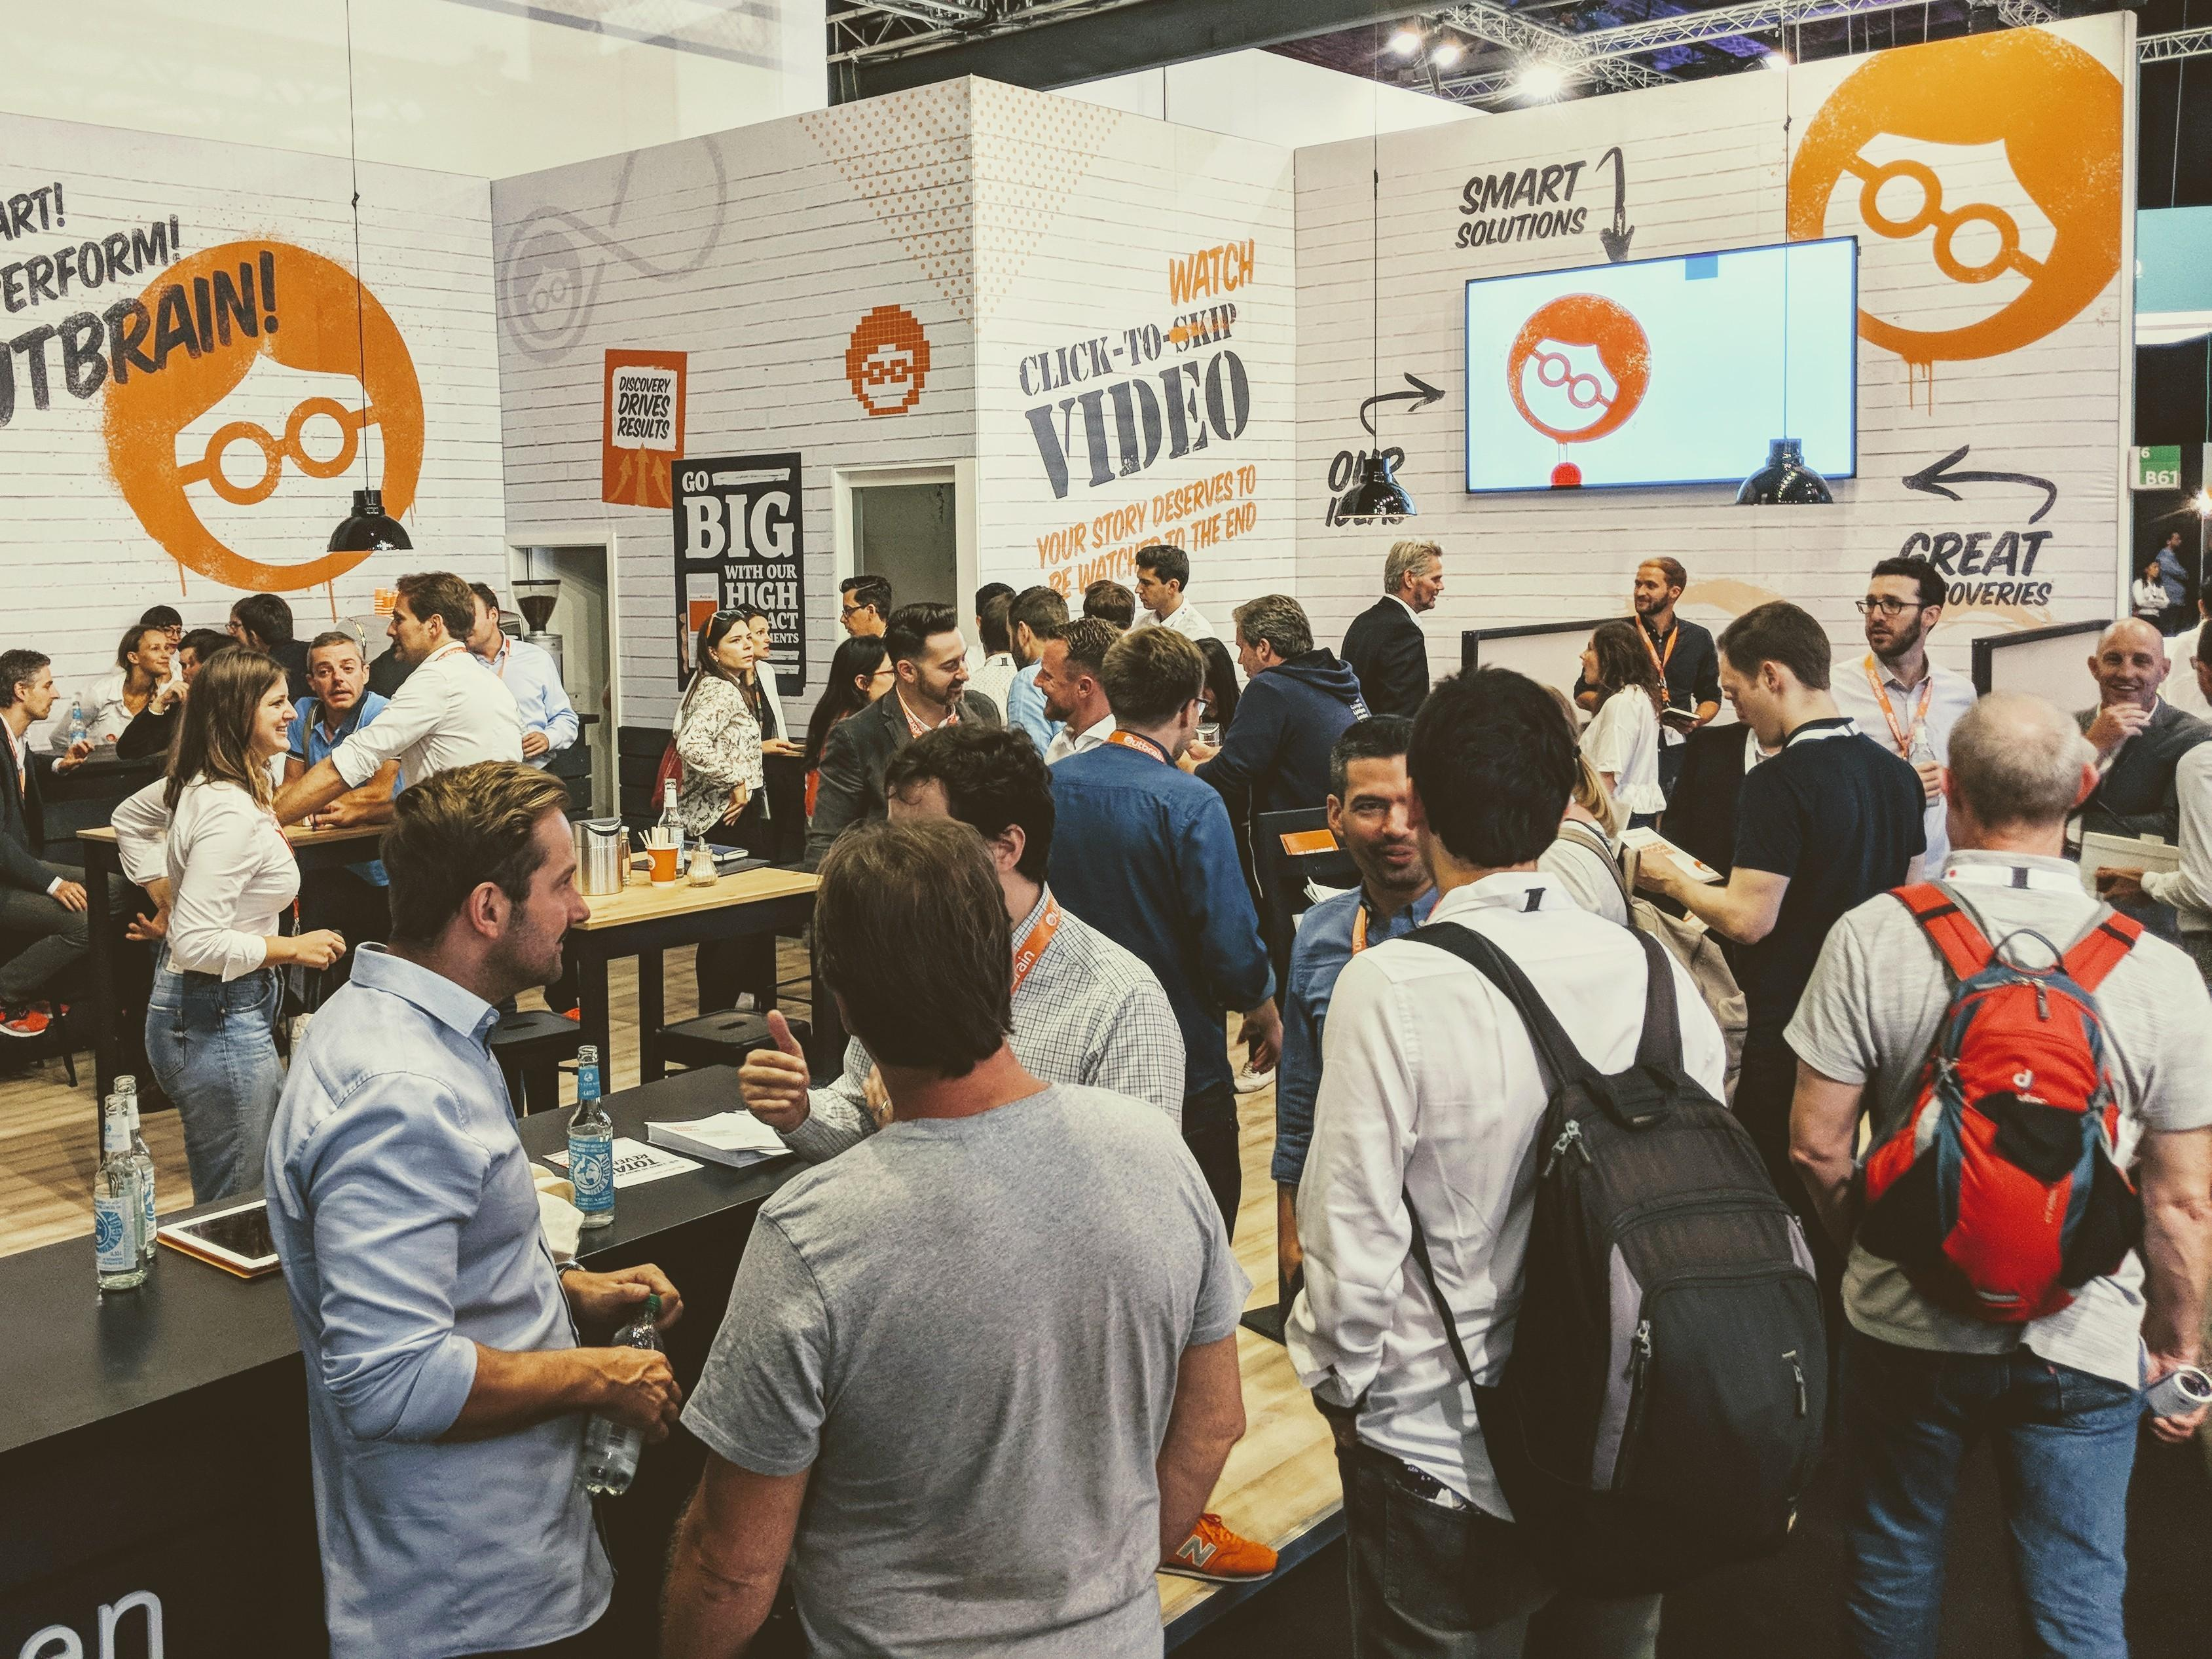 Outbrain DMEXCO 2018